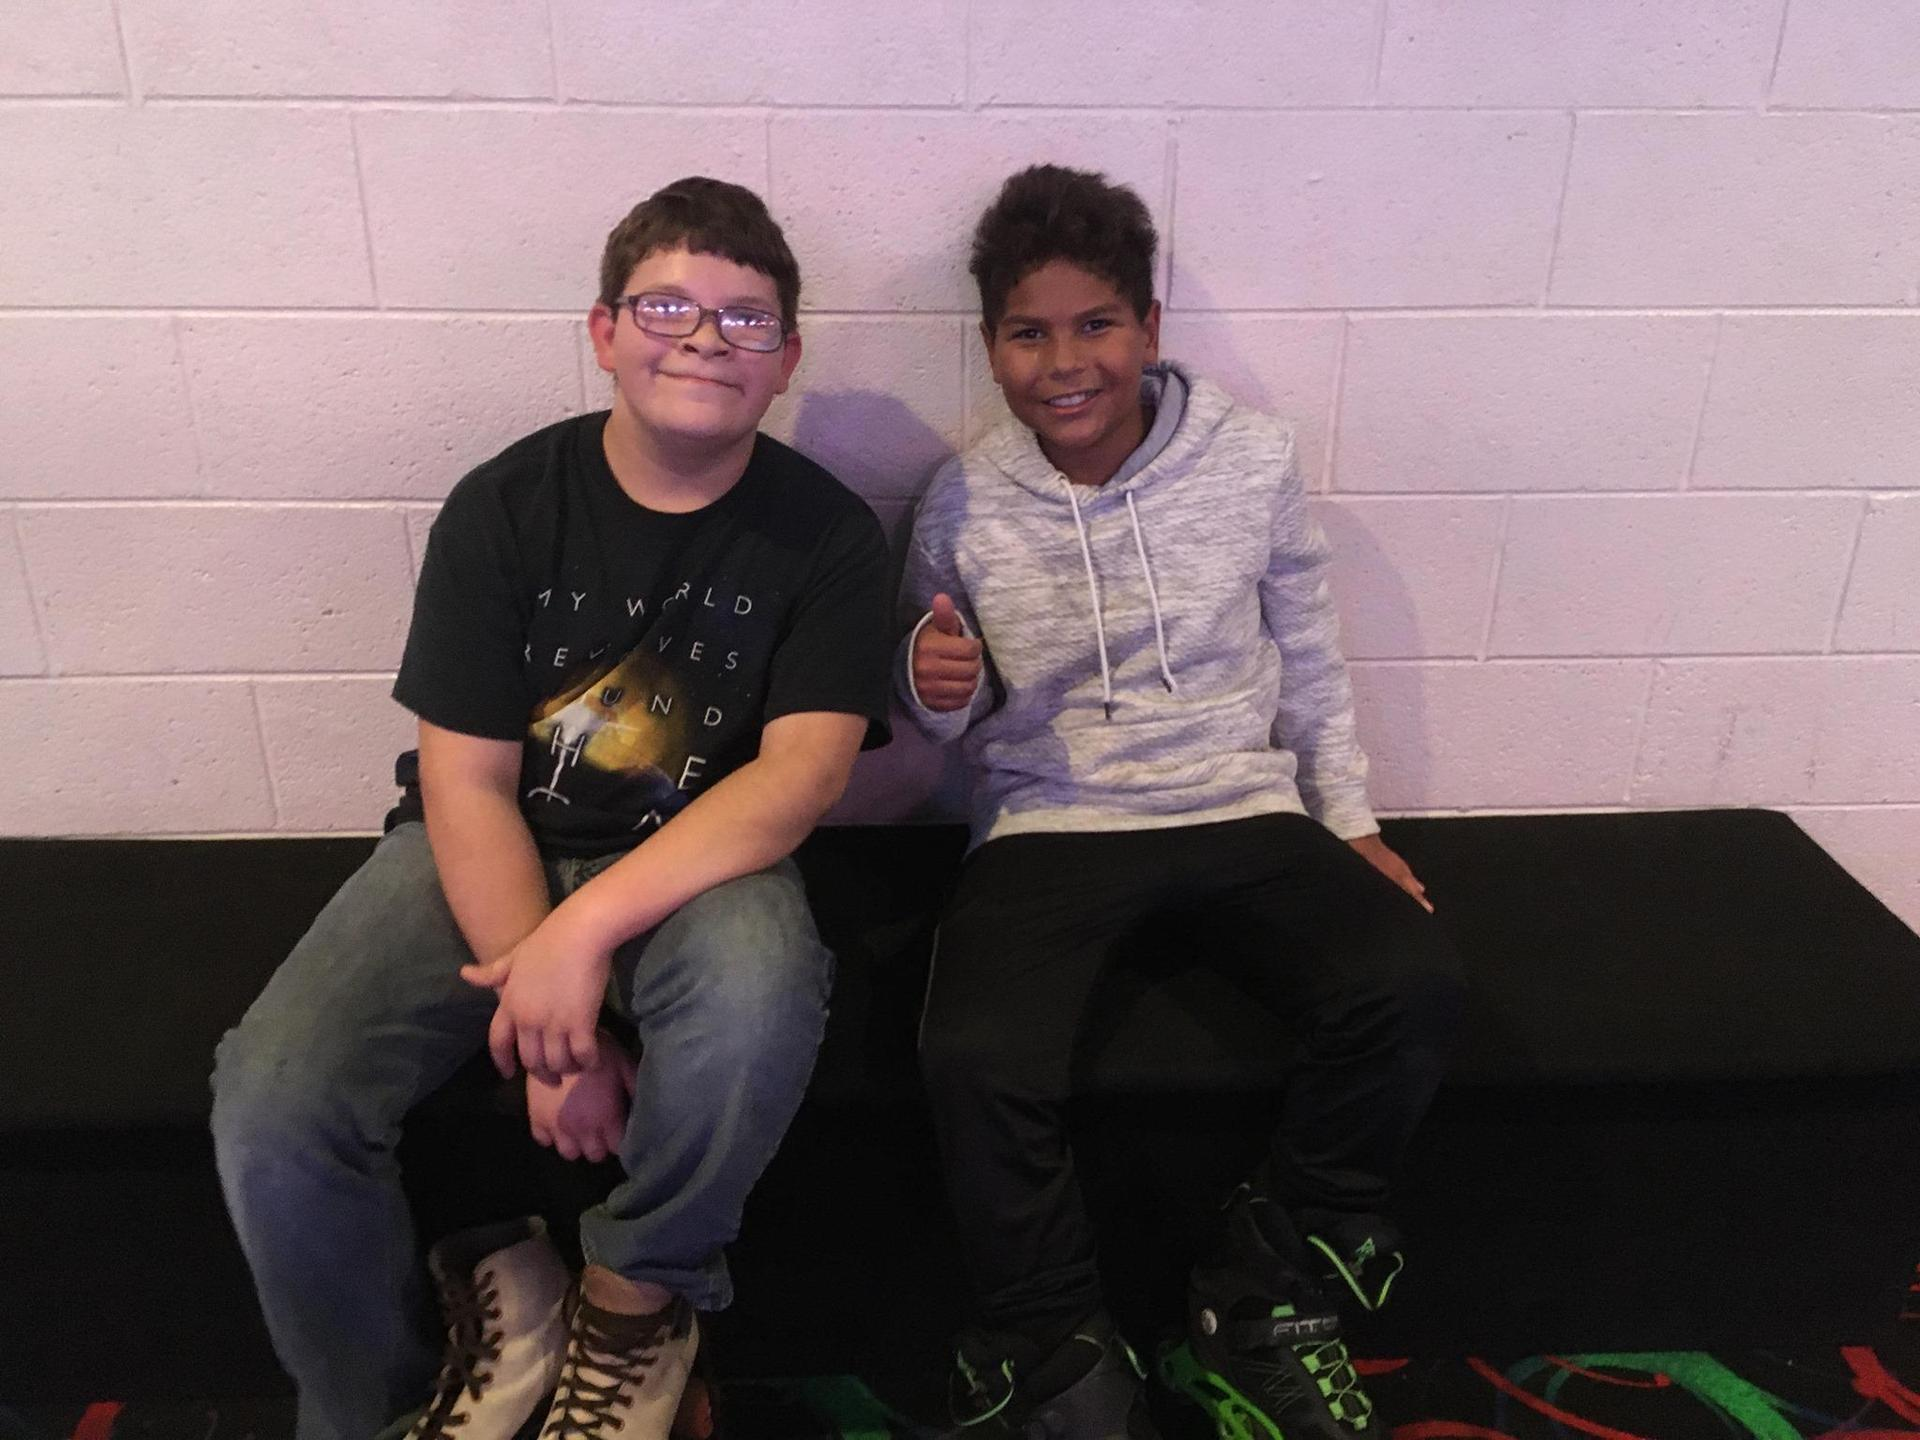 Kids at Great Skate - November 2019